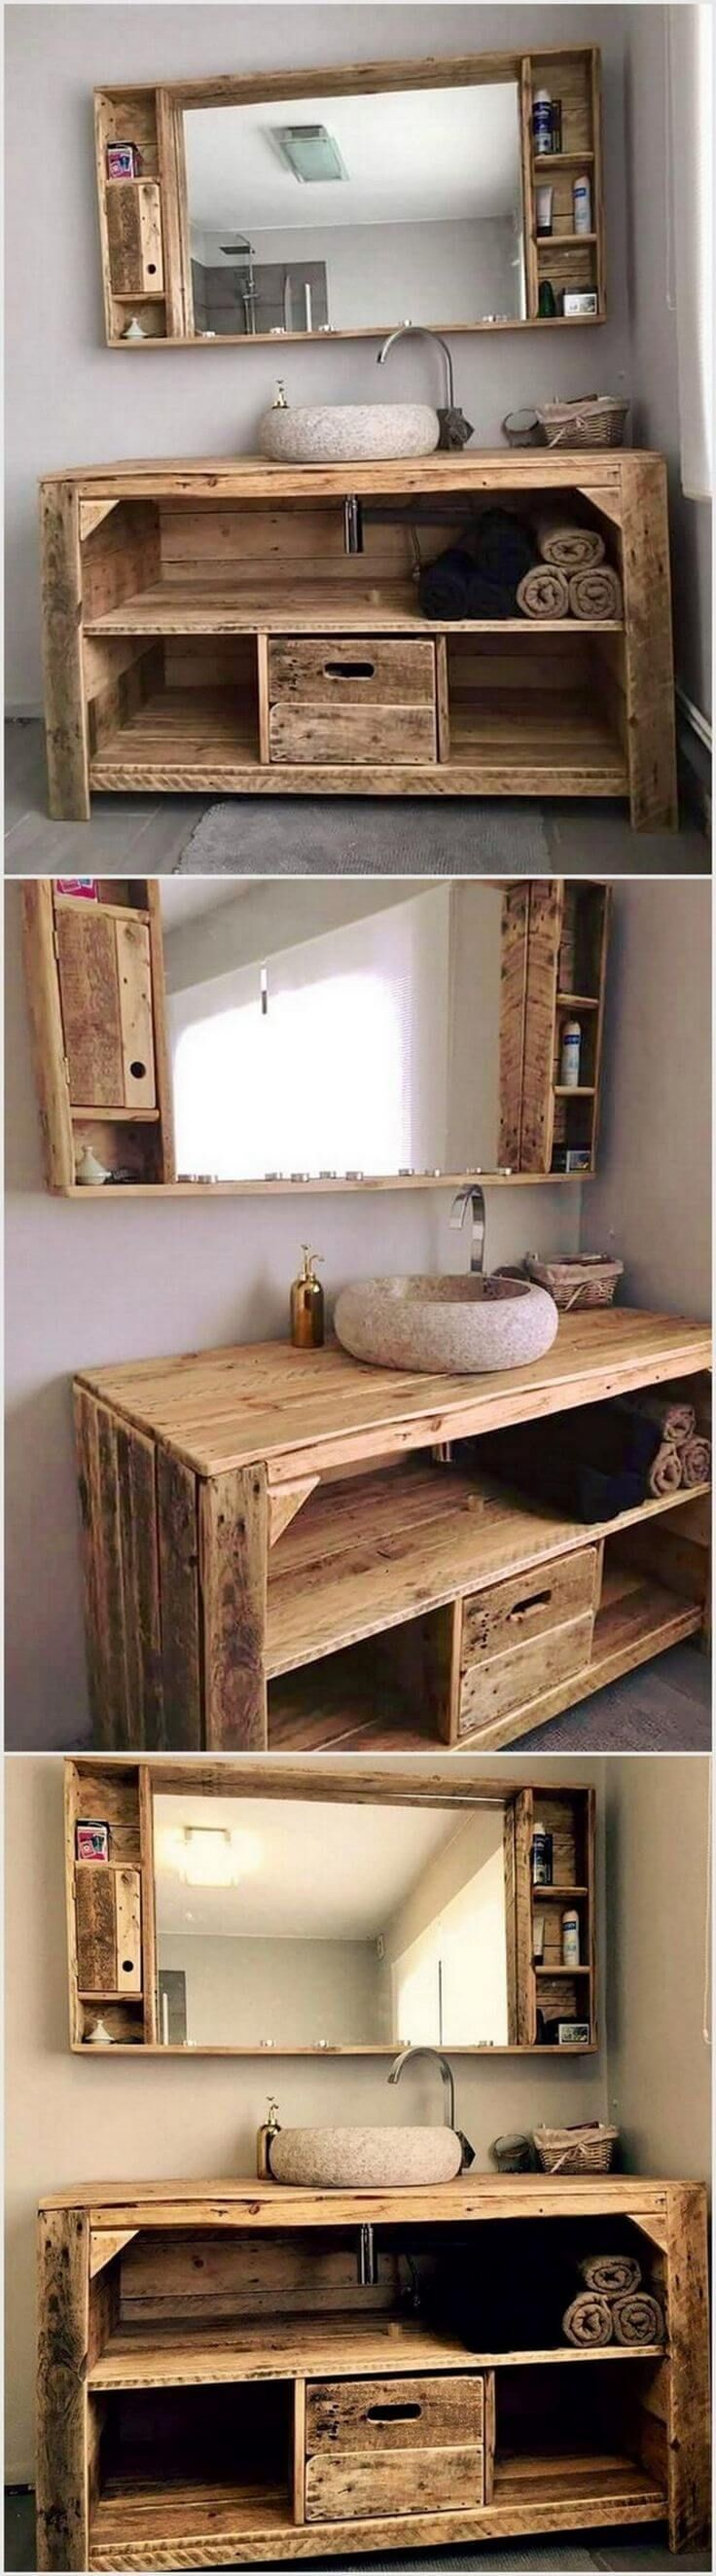 best wood projects diy unique images on pinterest